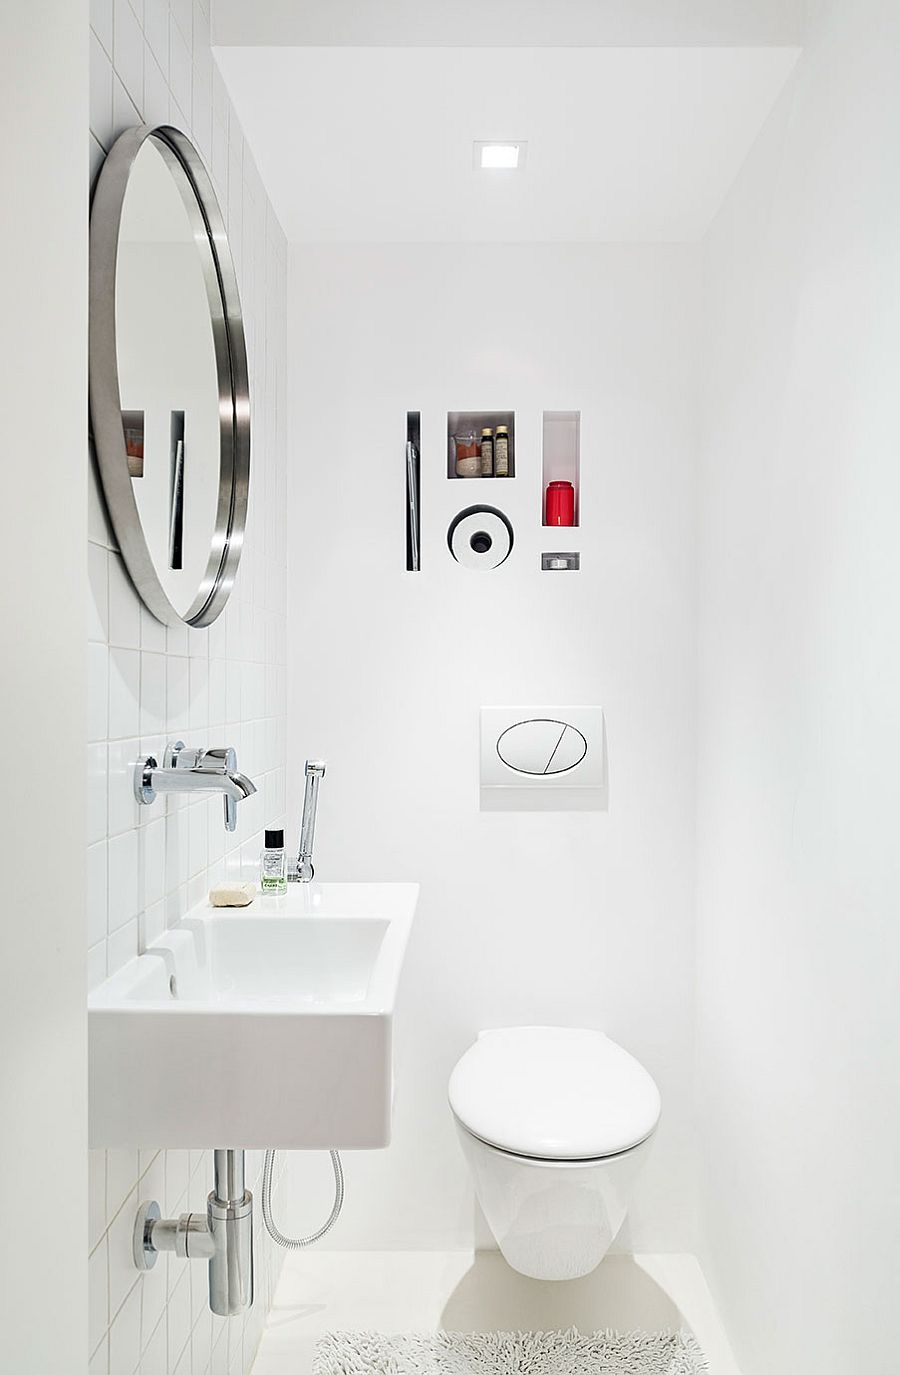 All-white small bathroom design